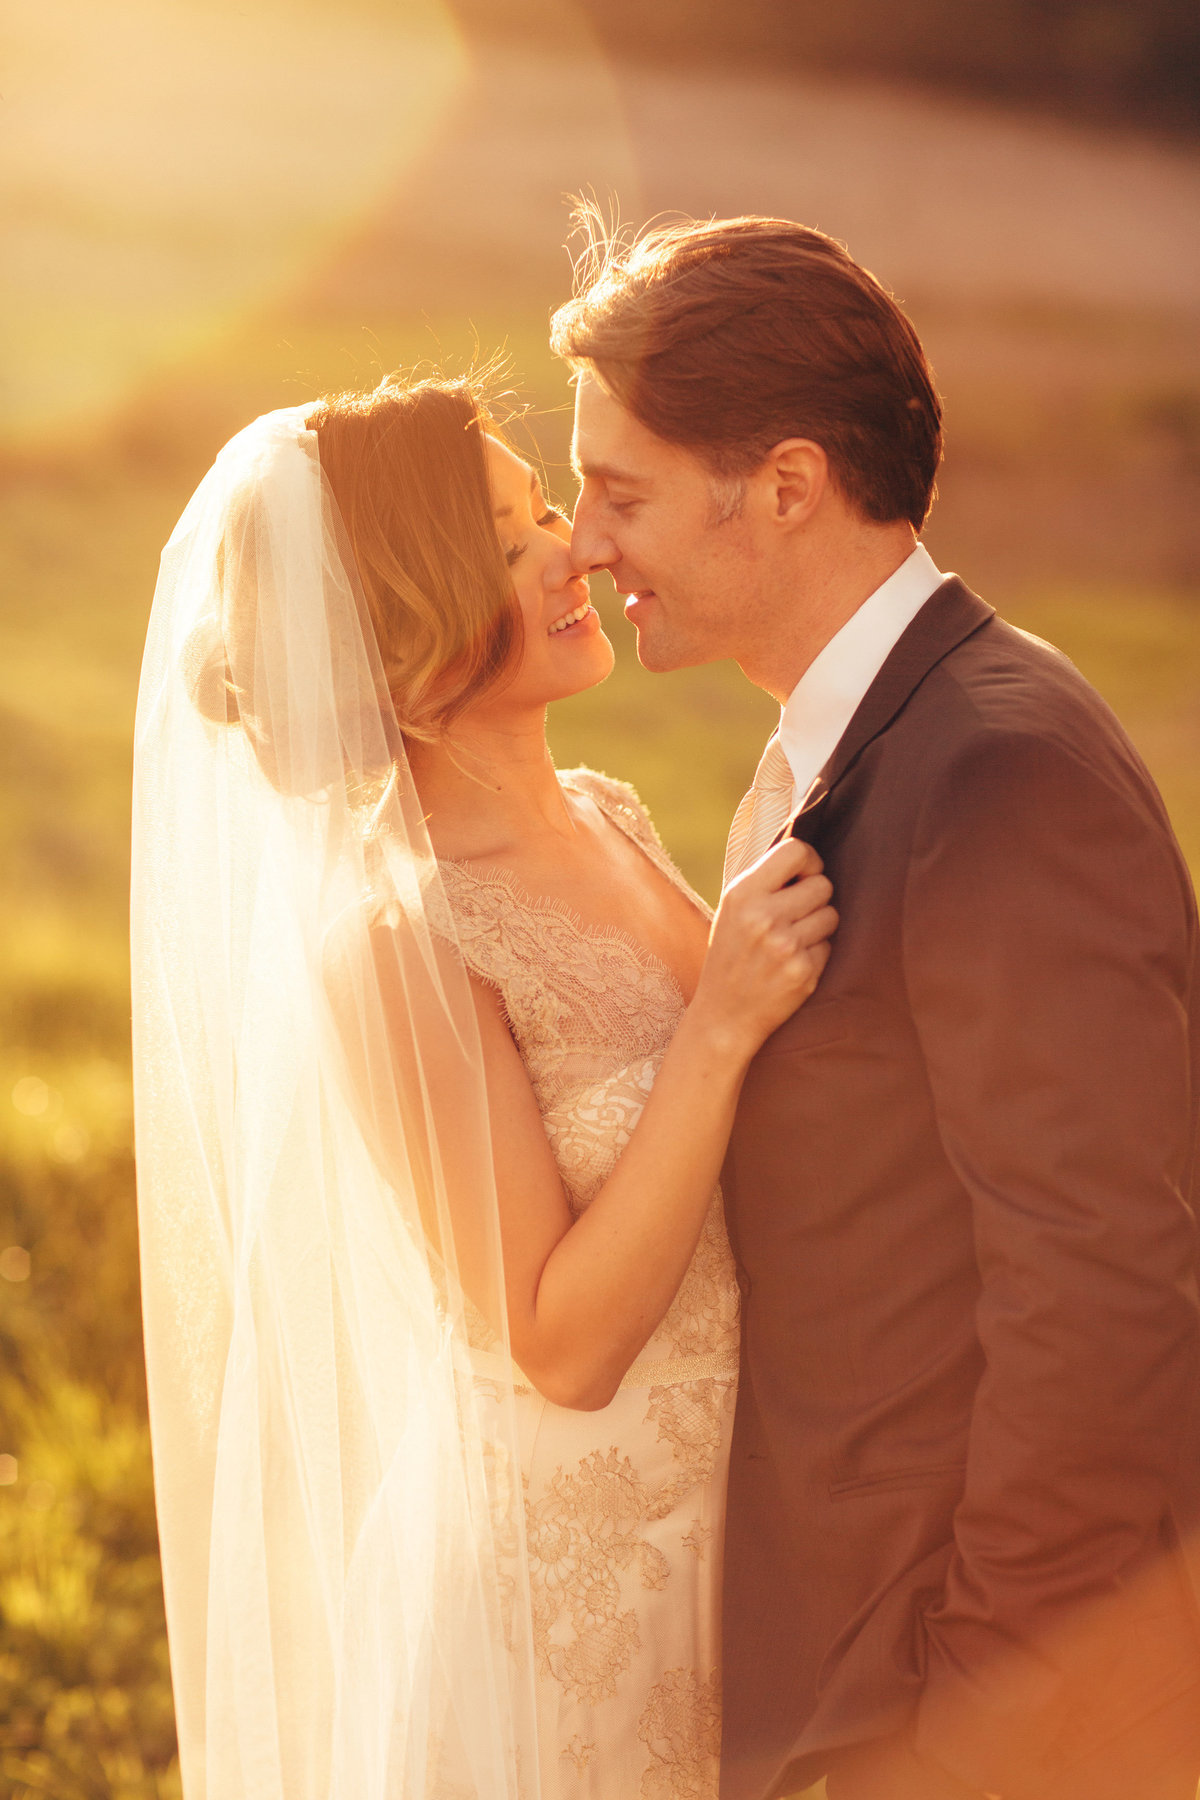 Wedding by Jenny Schneider Events in Sonoma, California. Photo by BrittRene Photography.